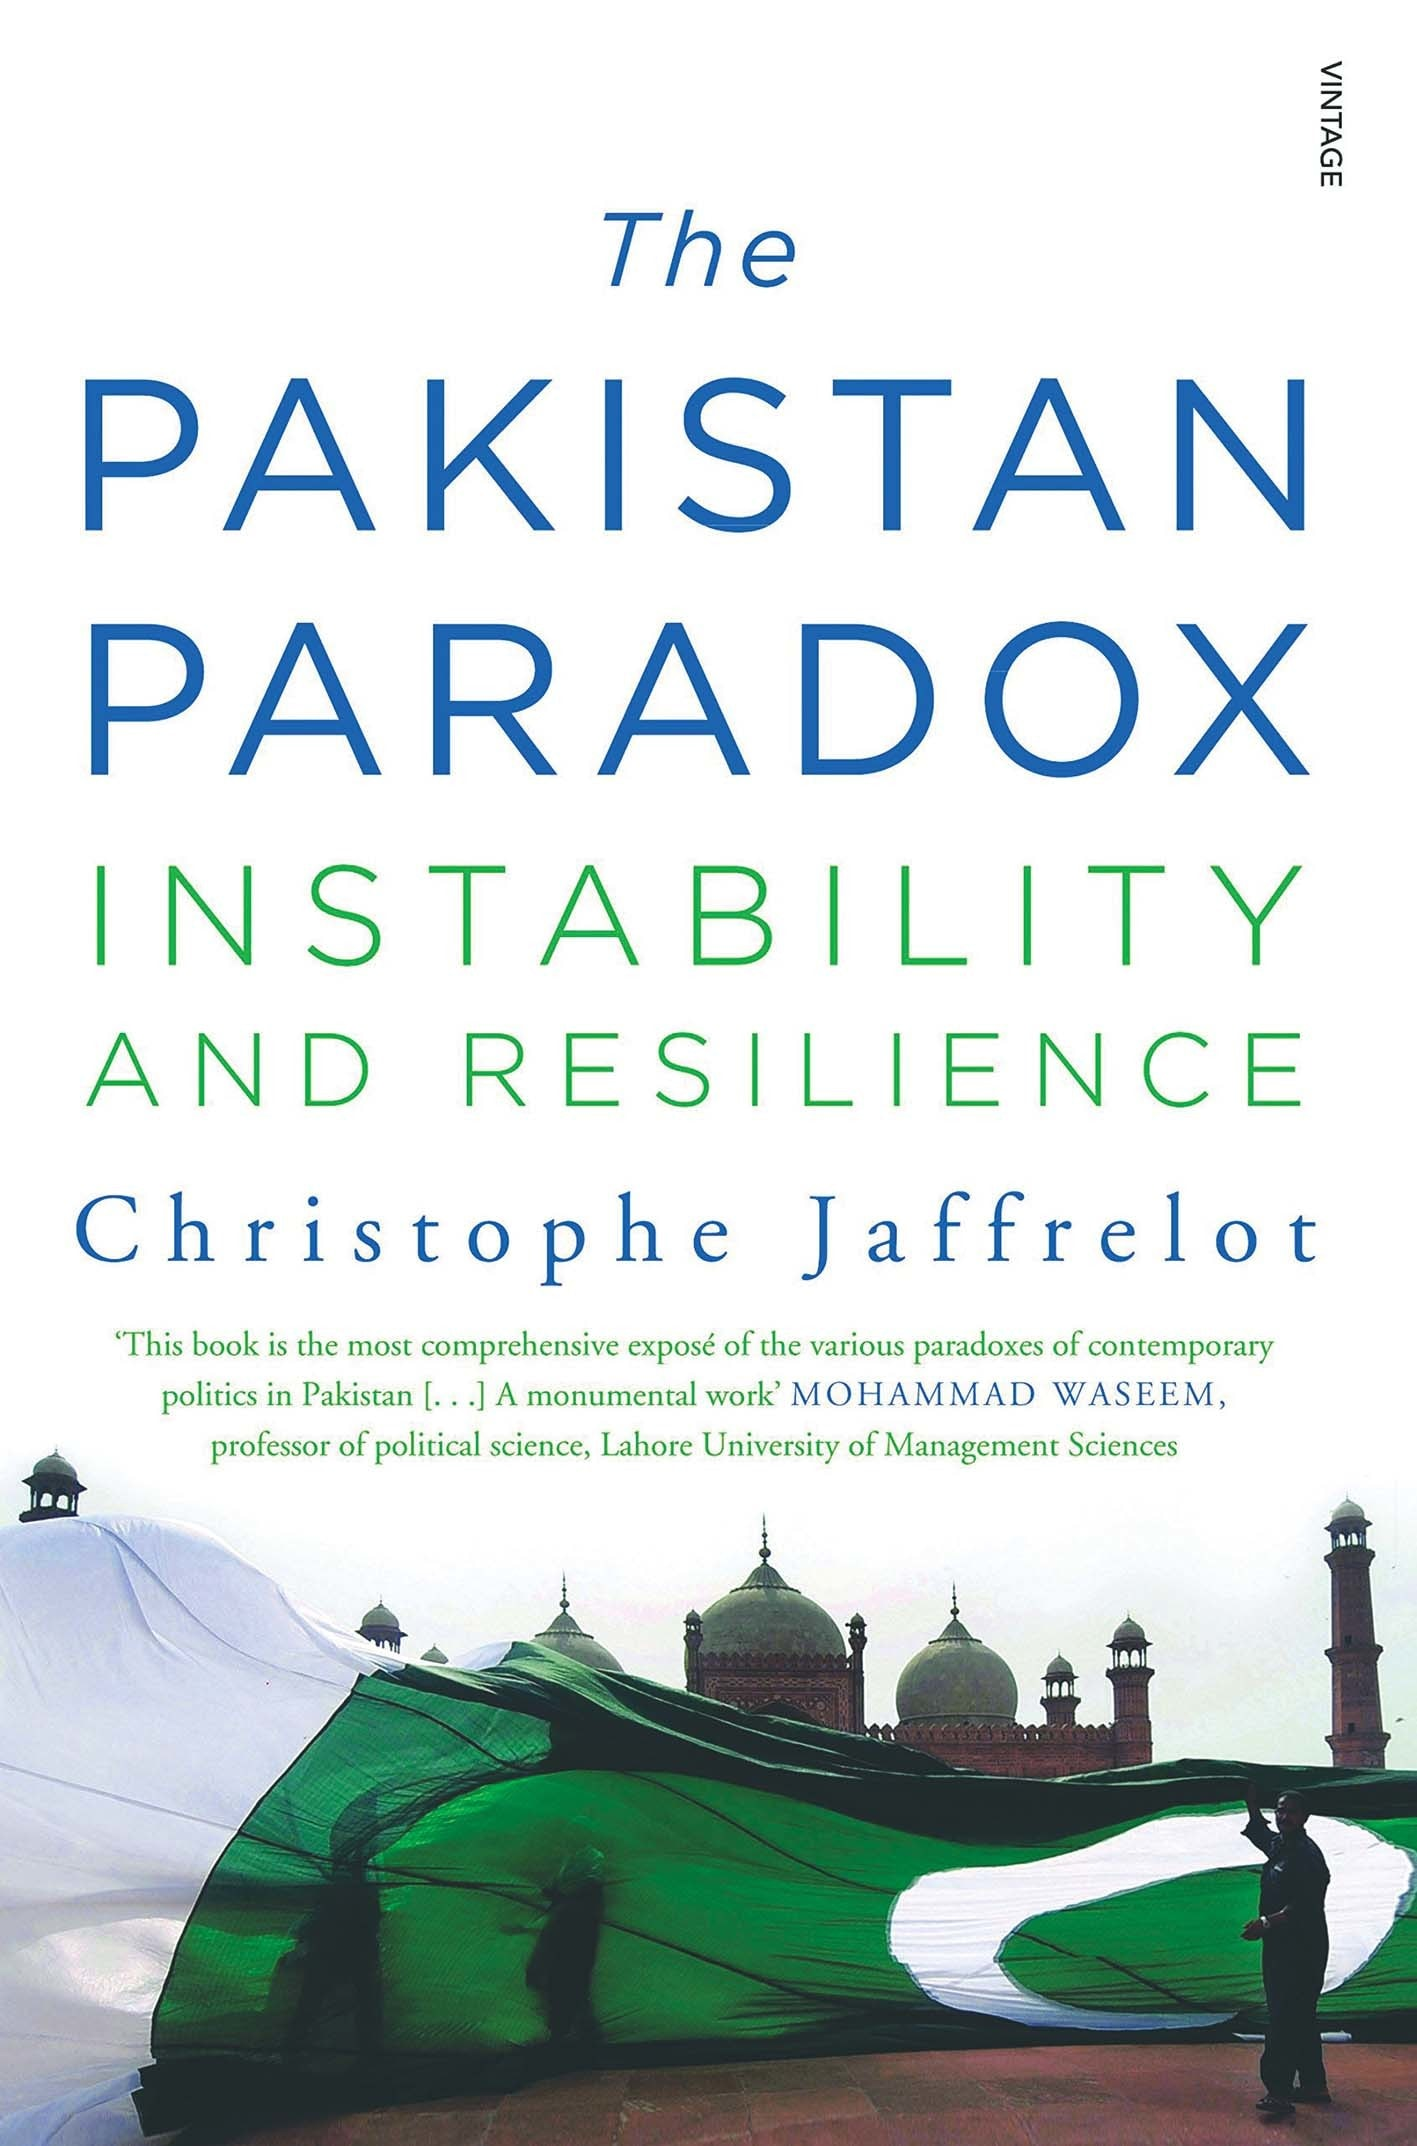 The Pakistan Paradox: Instability and Resilience   By Christophe Jaffrelot